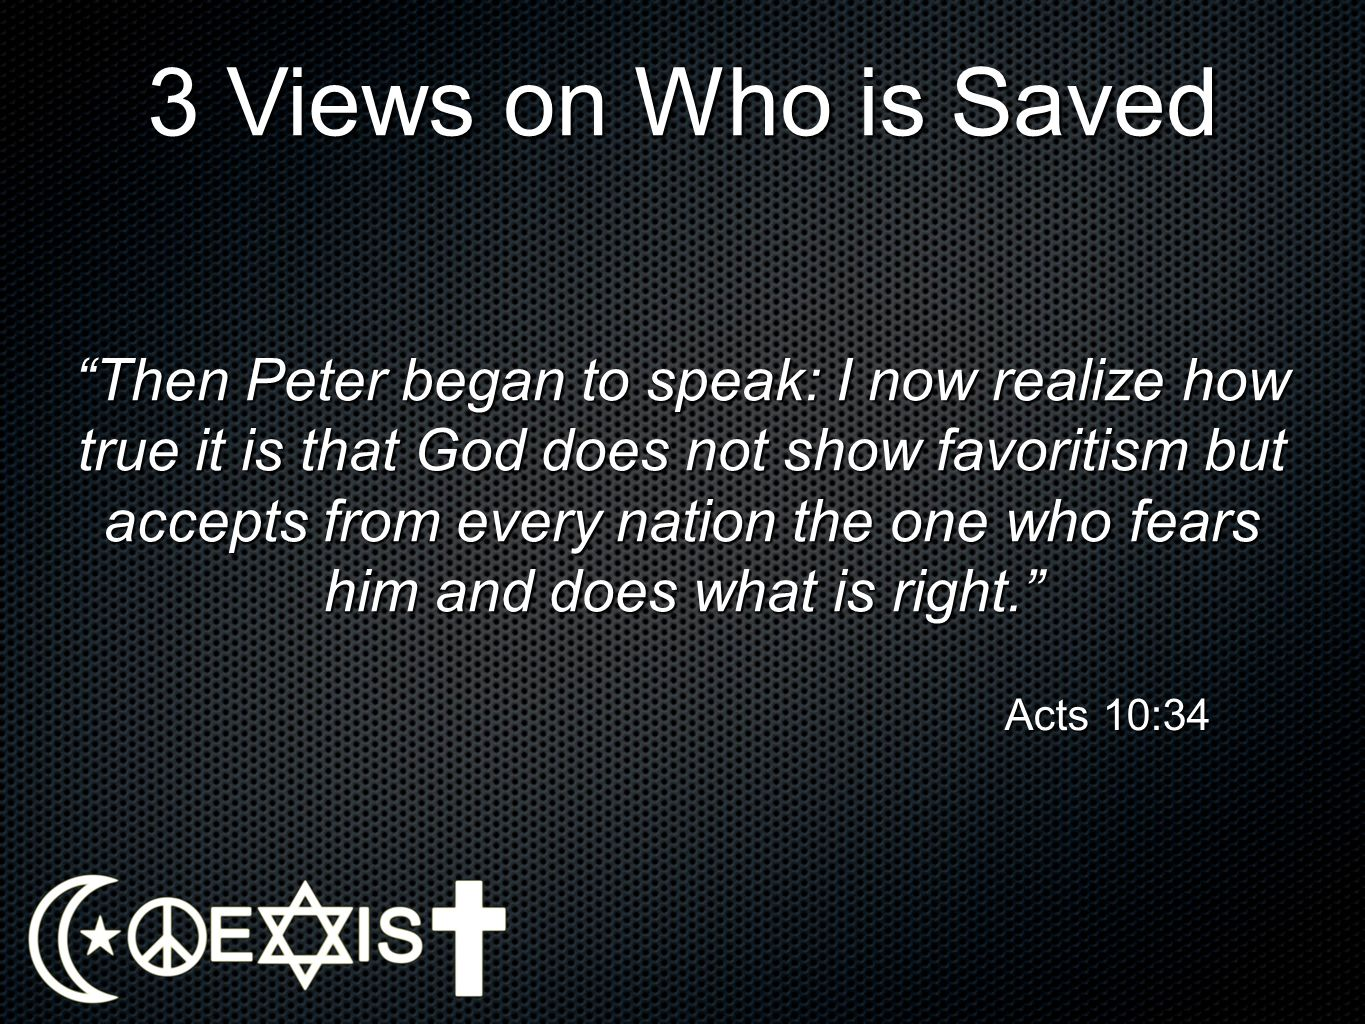 3 Views on Who is Saved Then Peter began to speak: I now realize how true it is that God does not show favoritism but accepts from every nation the on